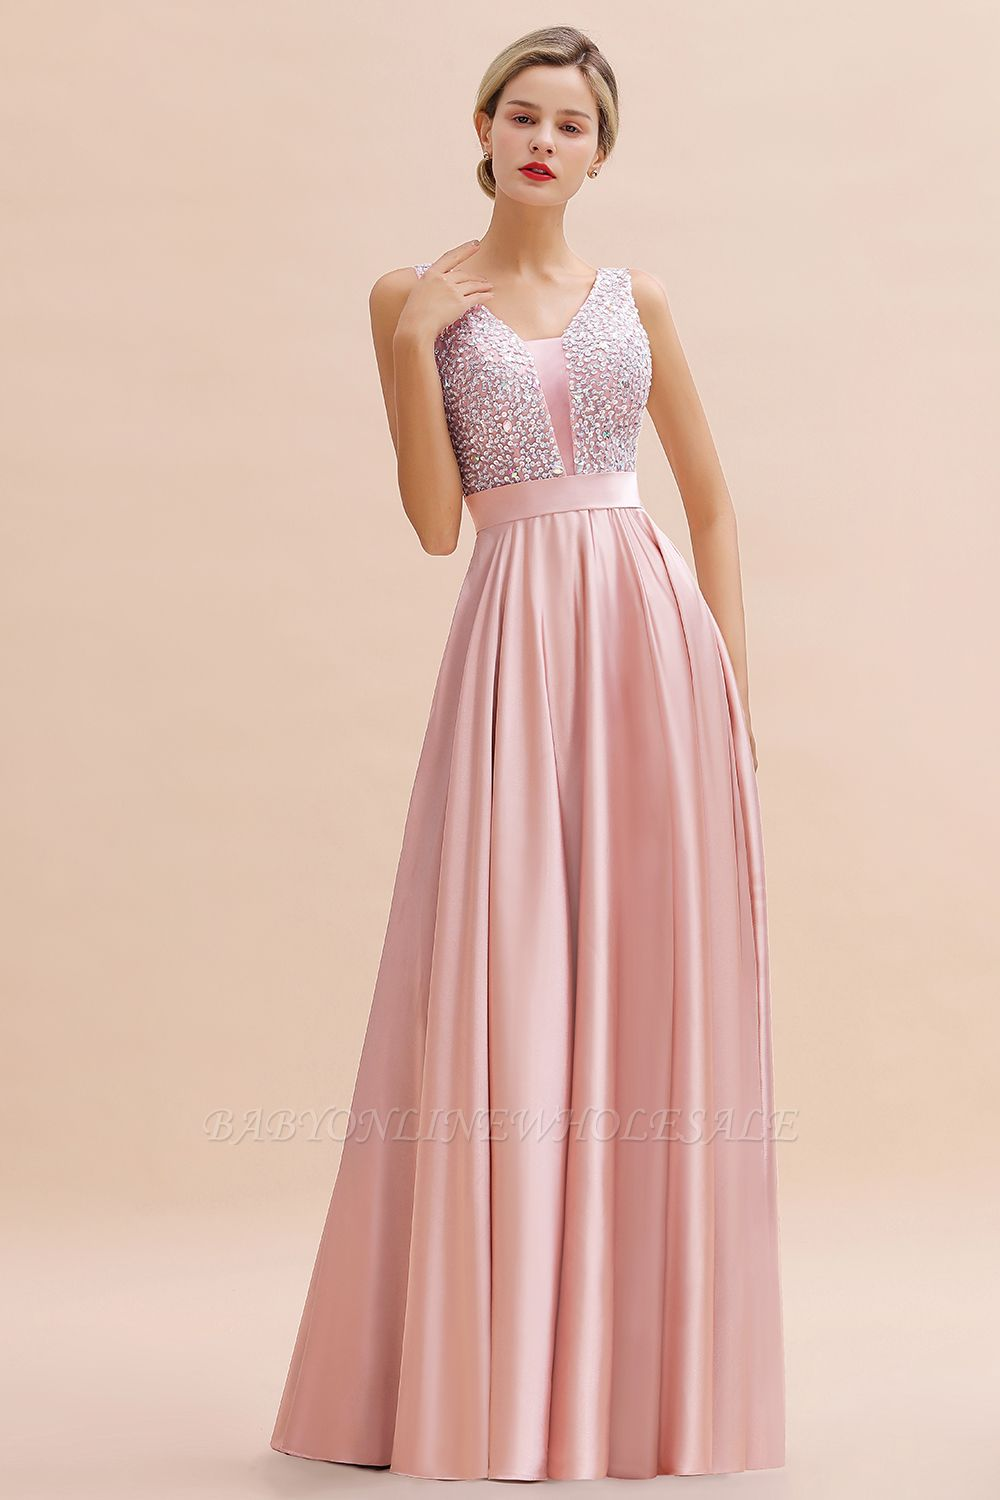 Arik | Simple Pearl pink Sequined Belt Pleats Long Prom Dress